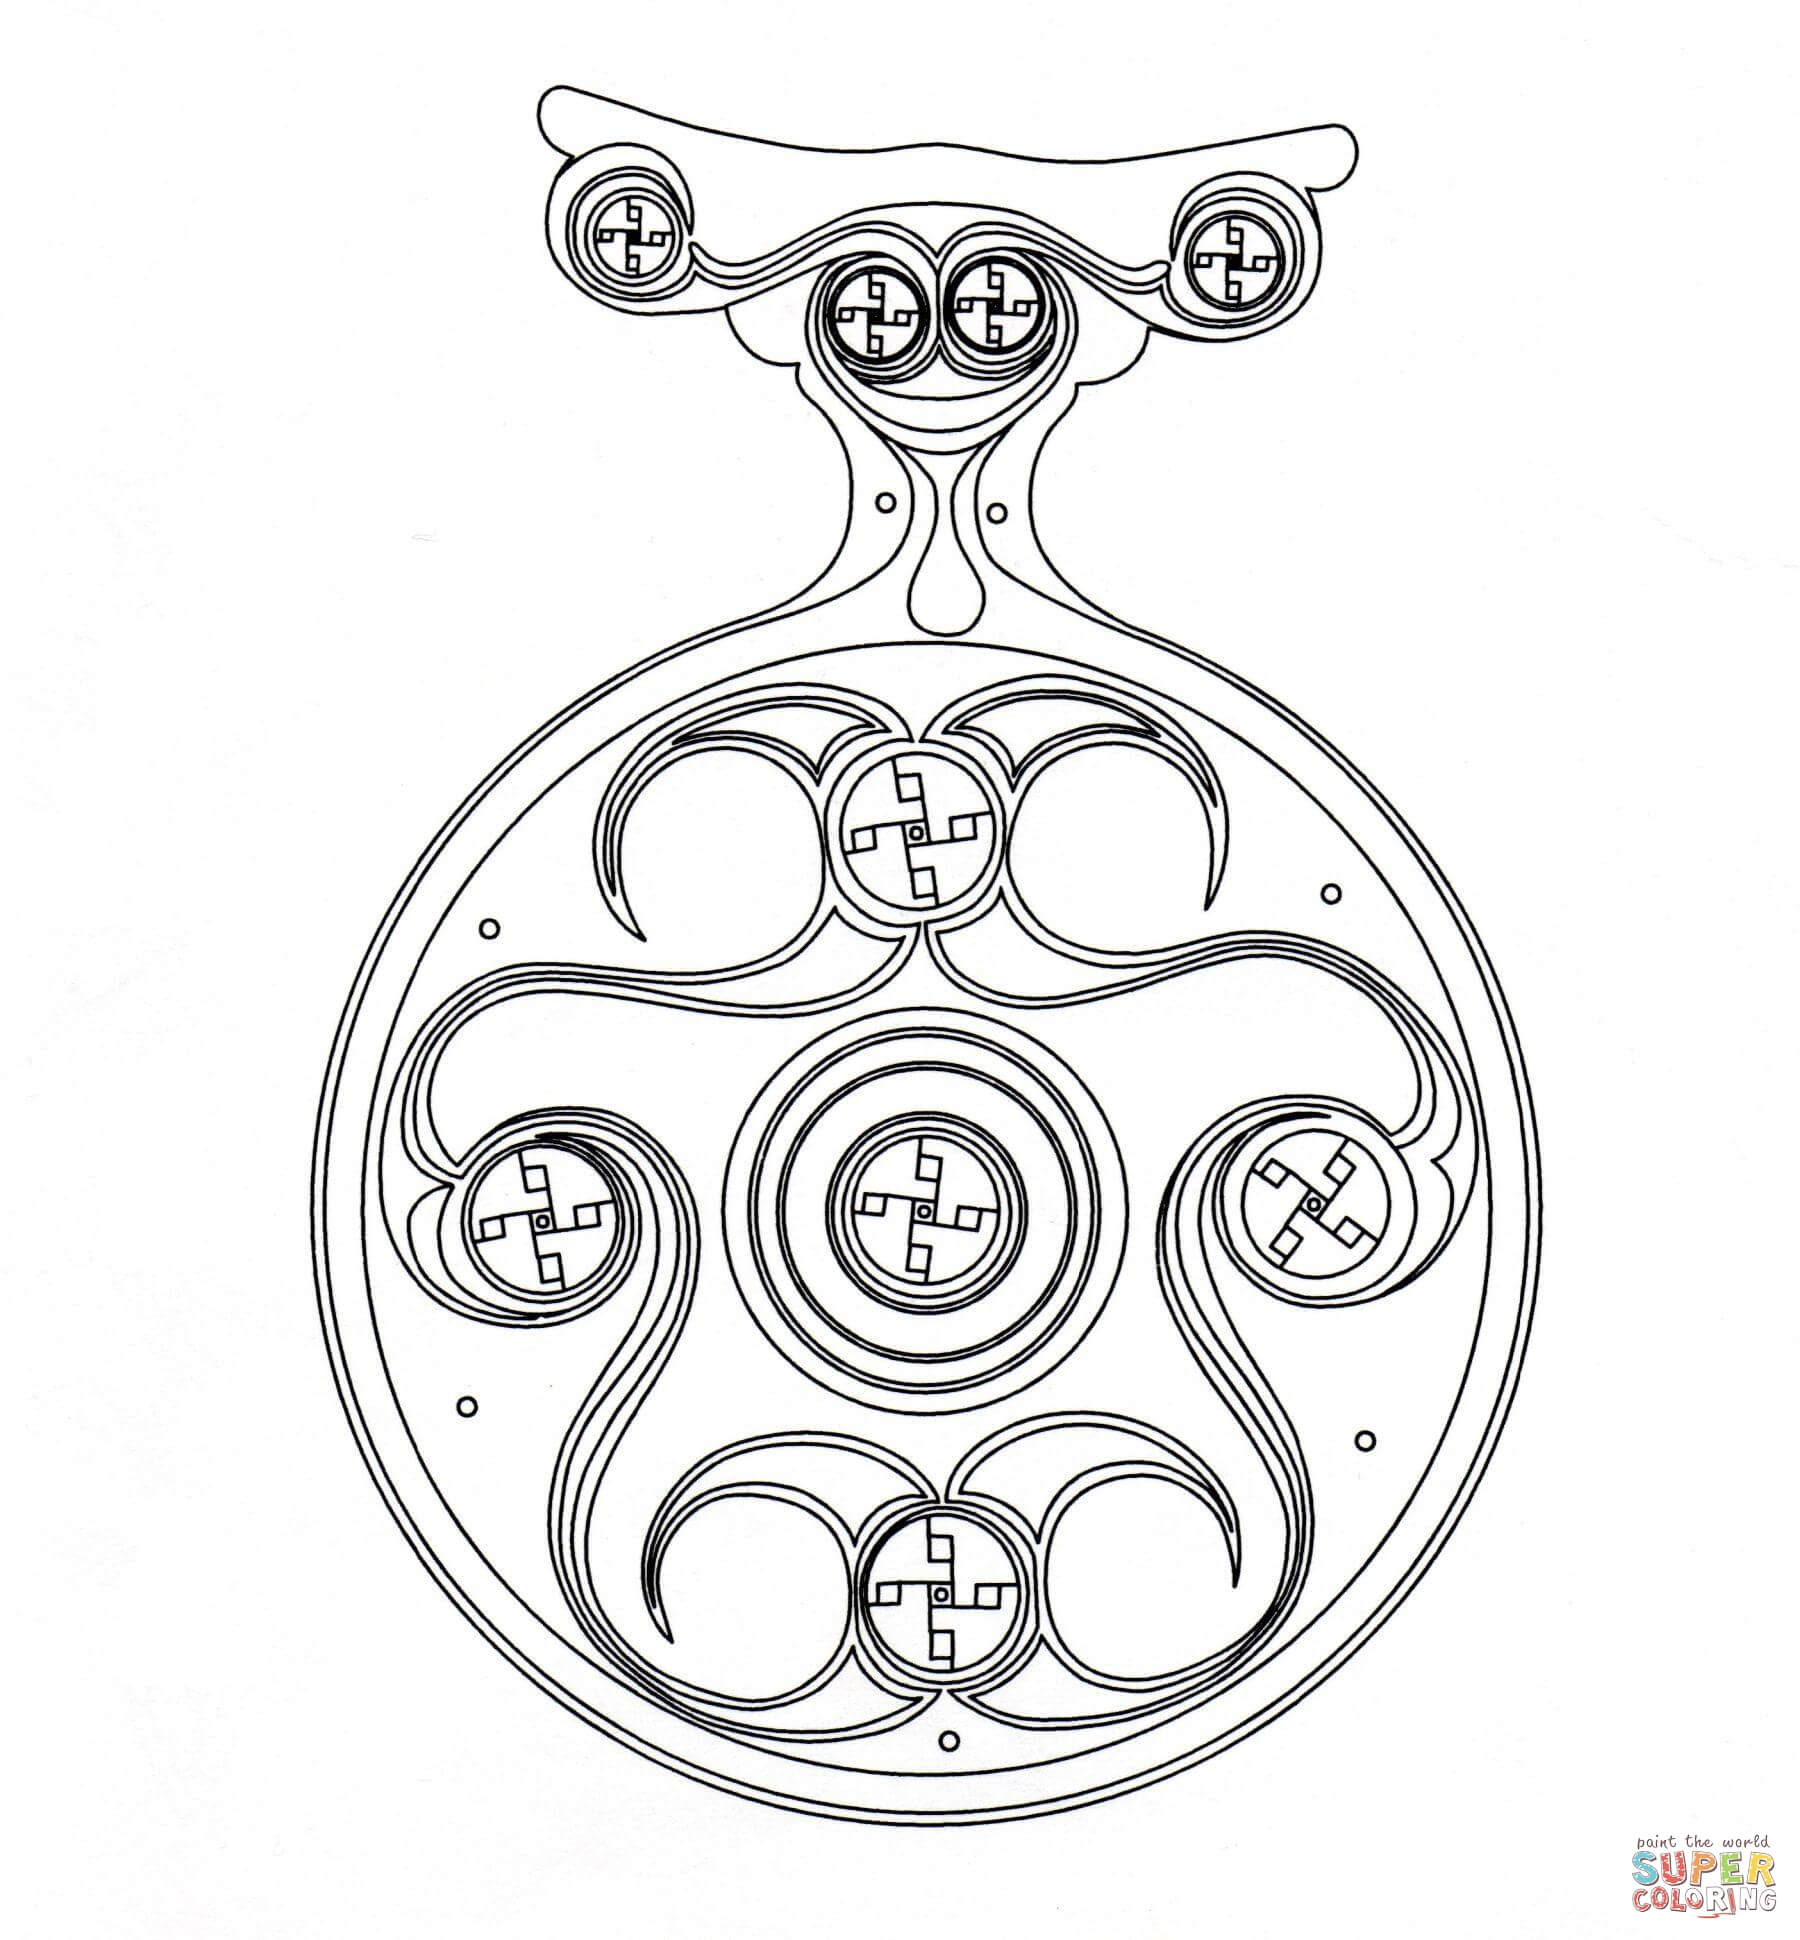 celtic art coloring pages free coloring pages - Celtic Coloring Pages For Adults